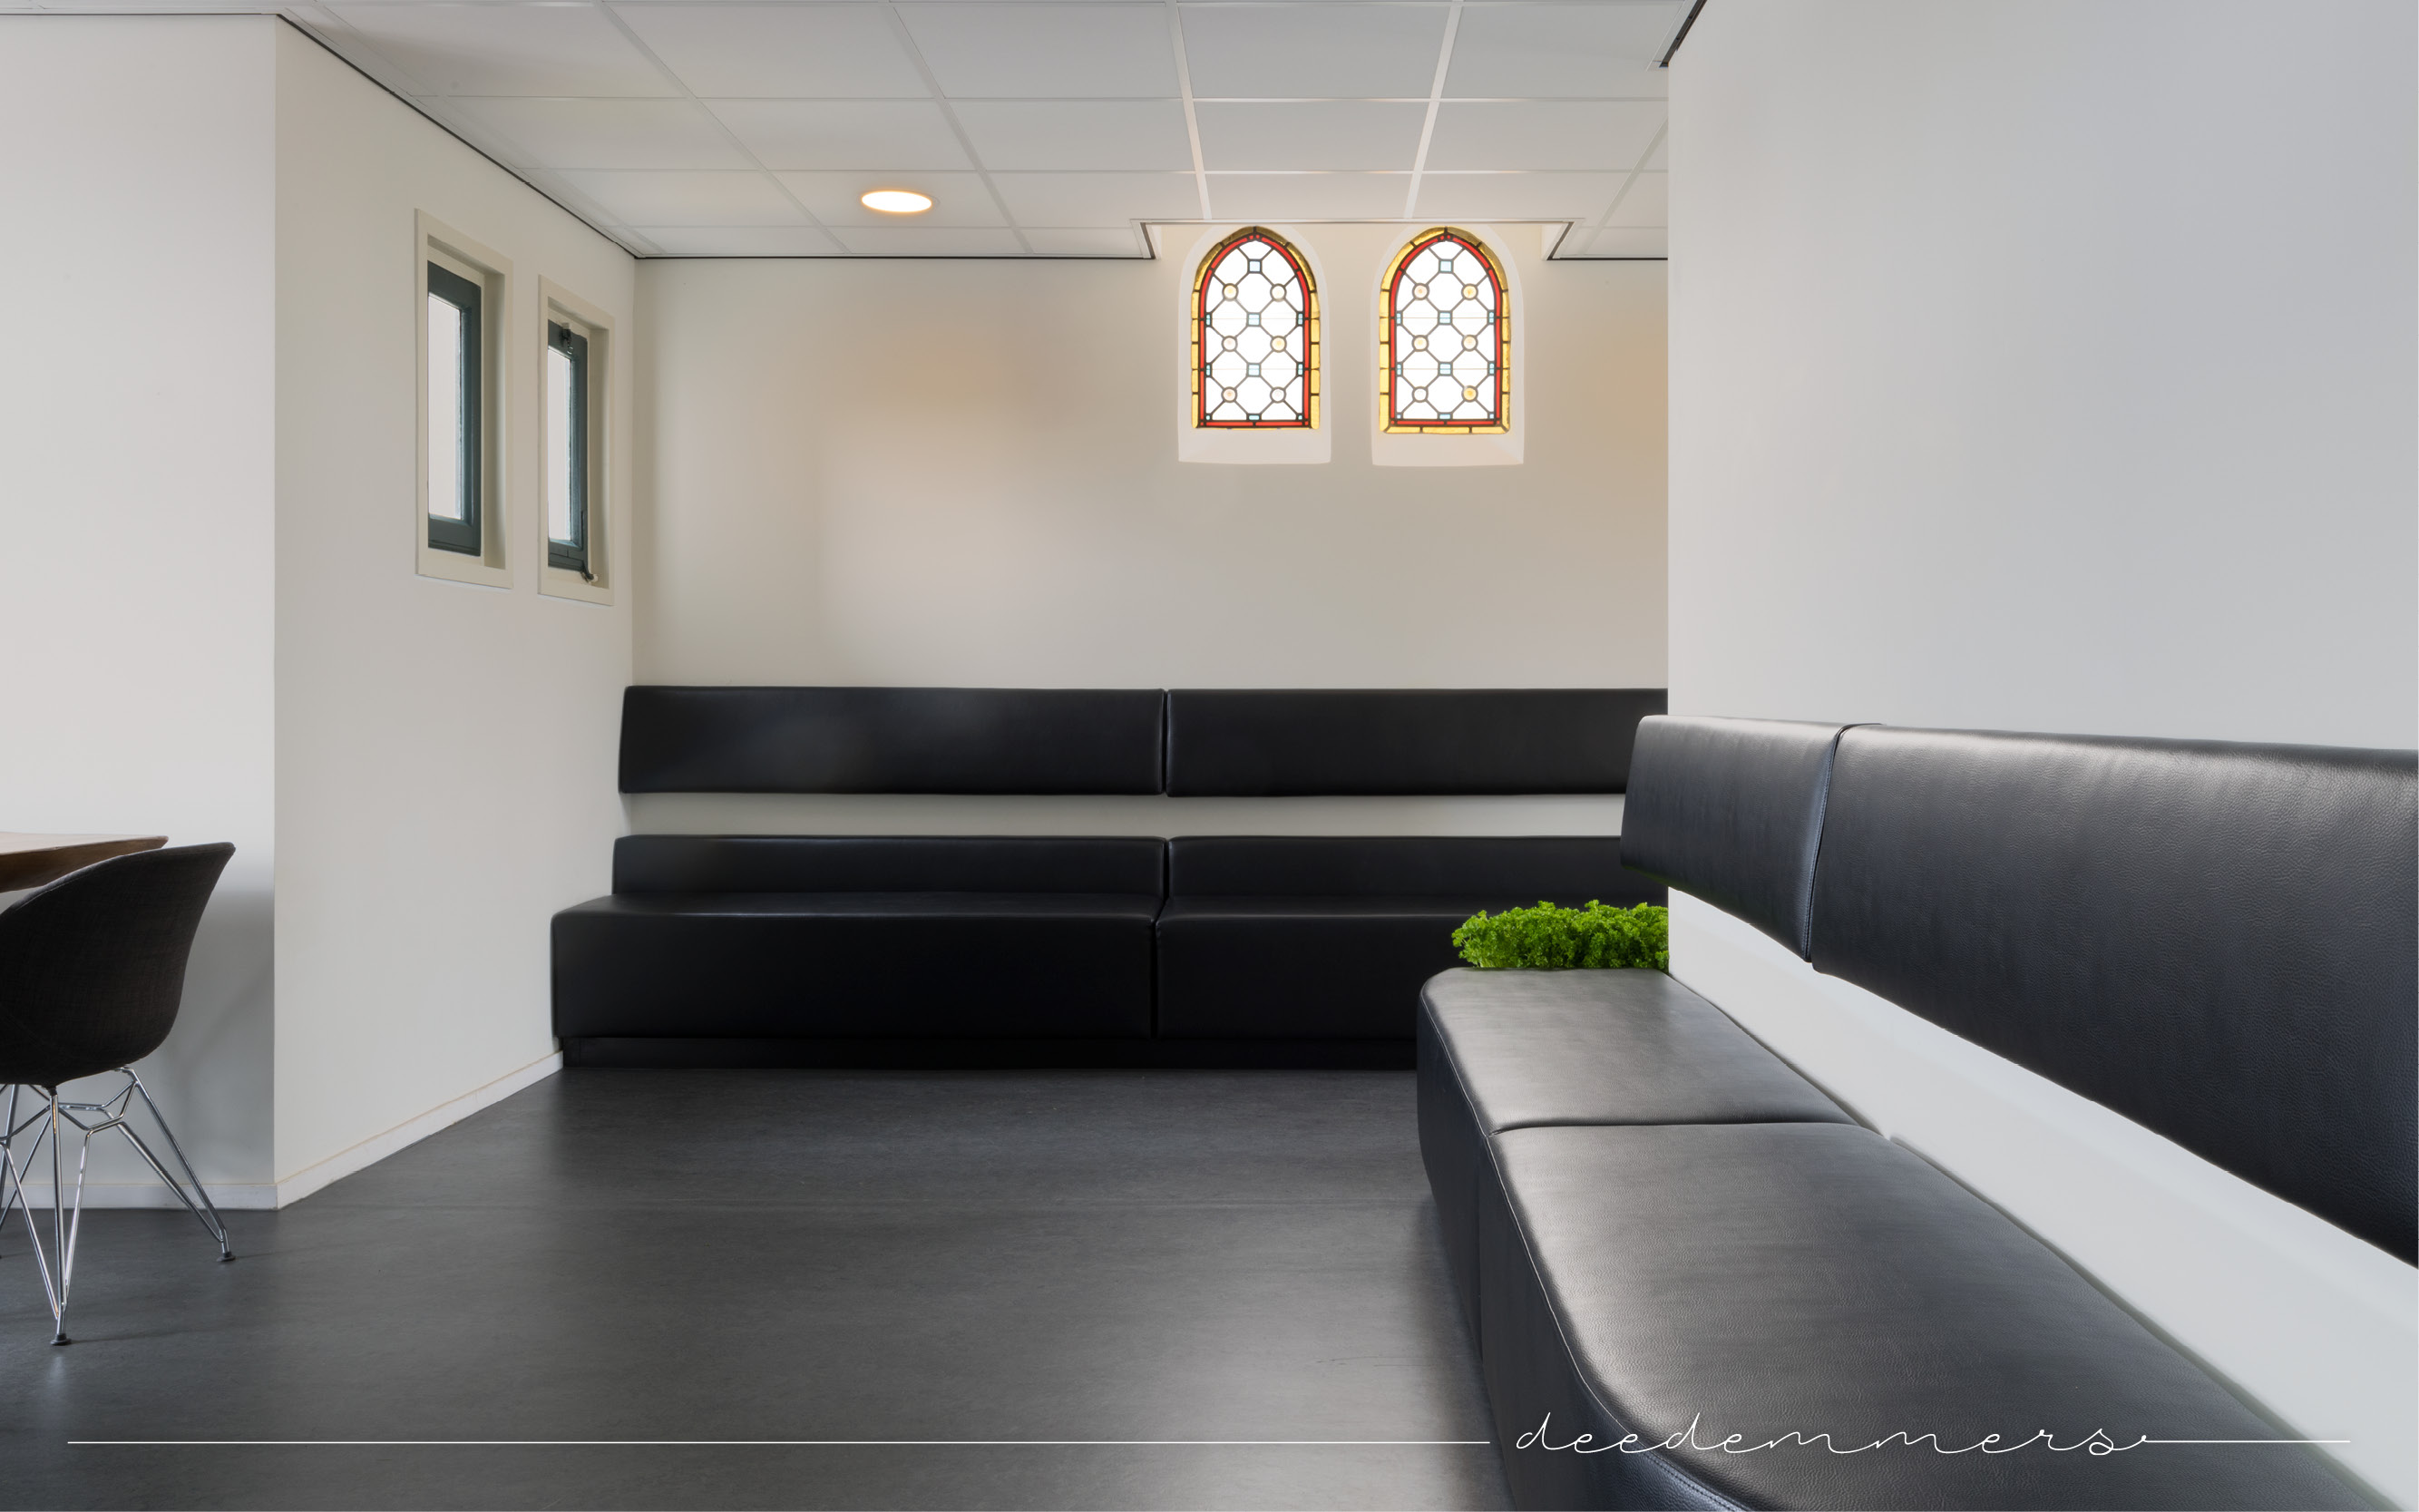 interieur design - Sacred simplicity by Deedemmers